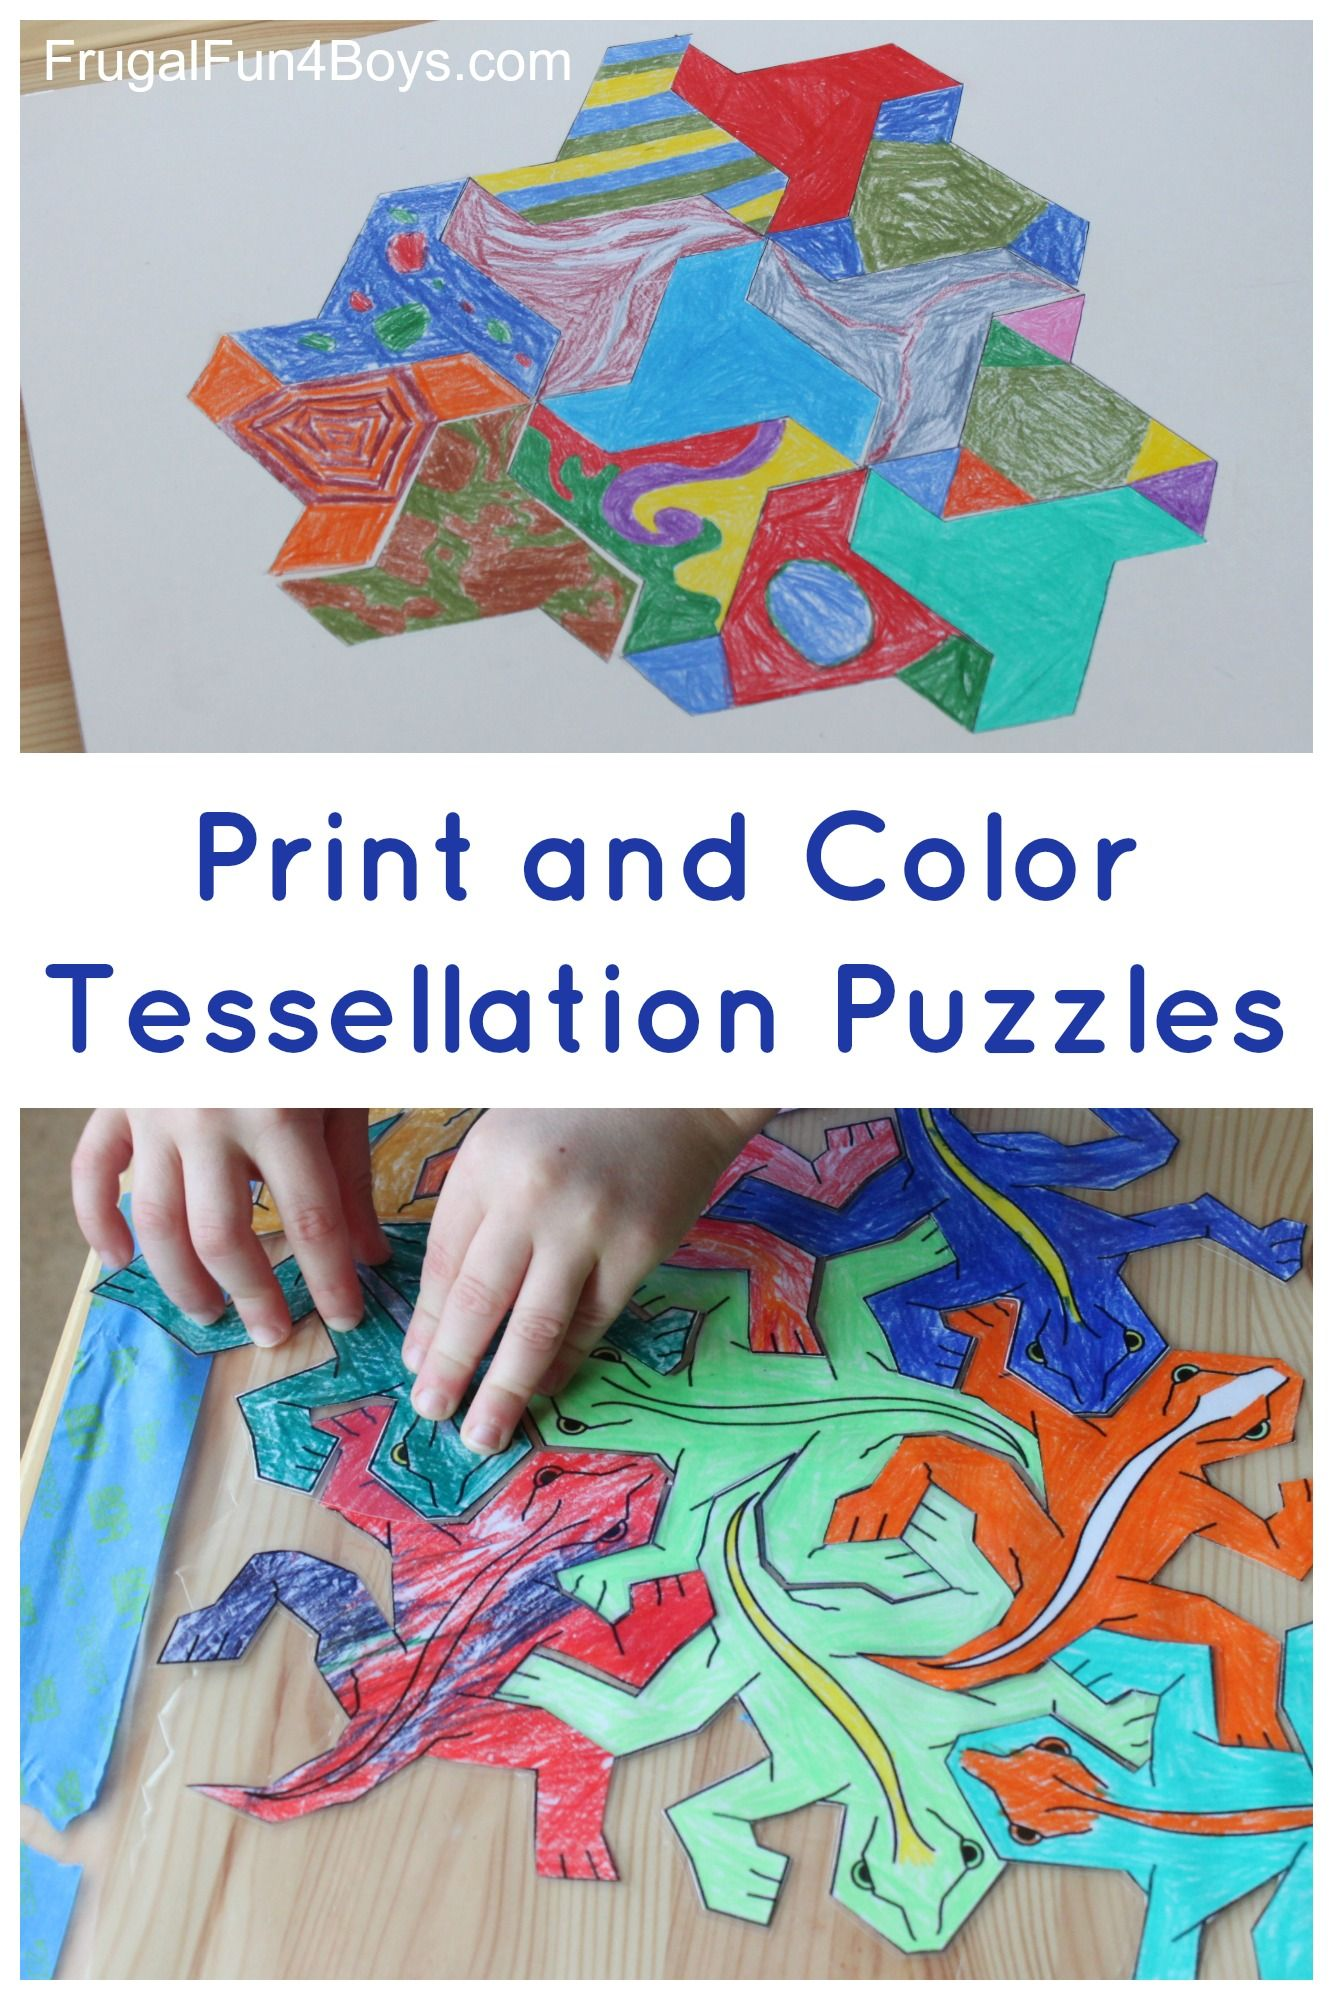 Print and Color Tessellation Puzzles for Kids | Pinterest | Explore ...